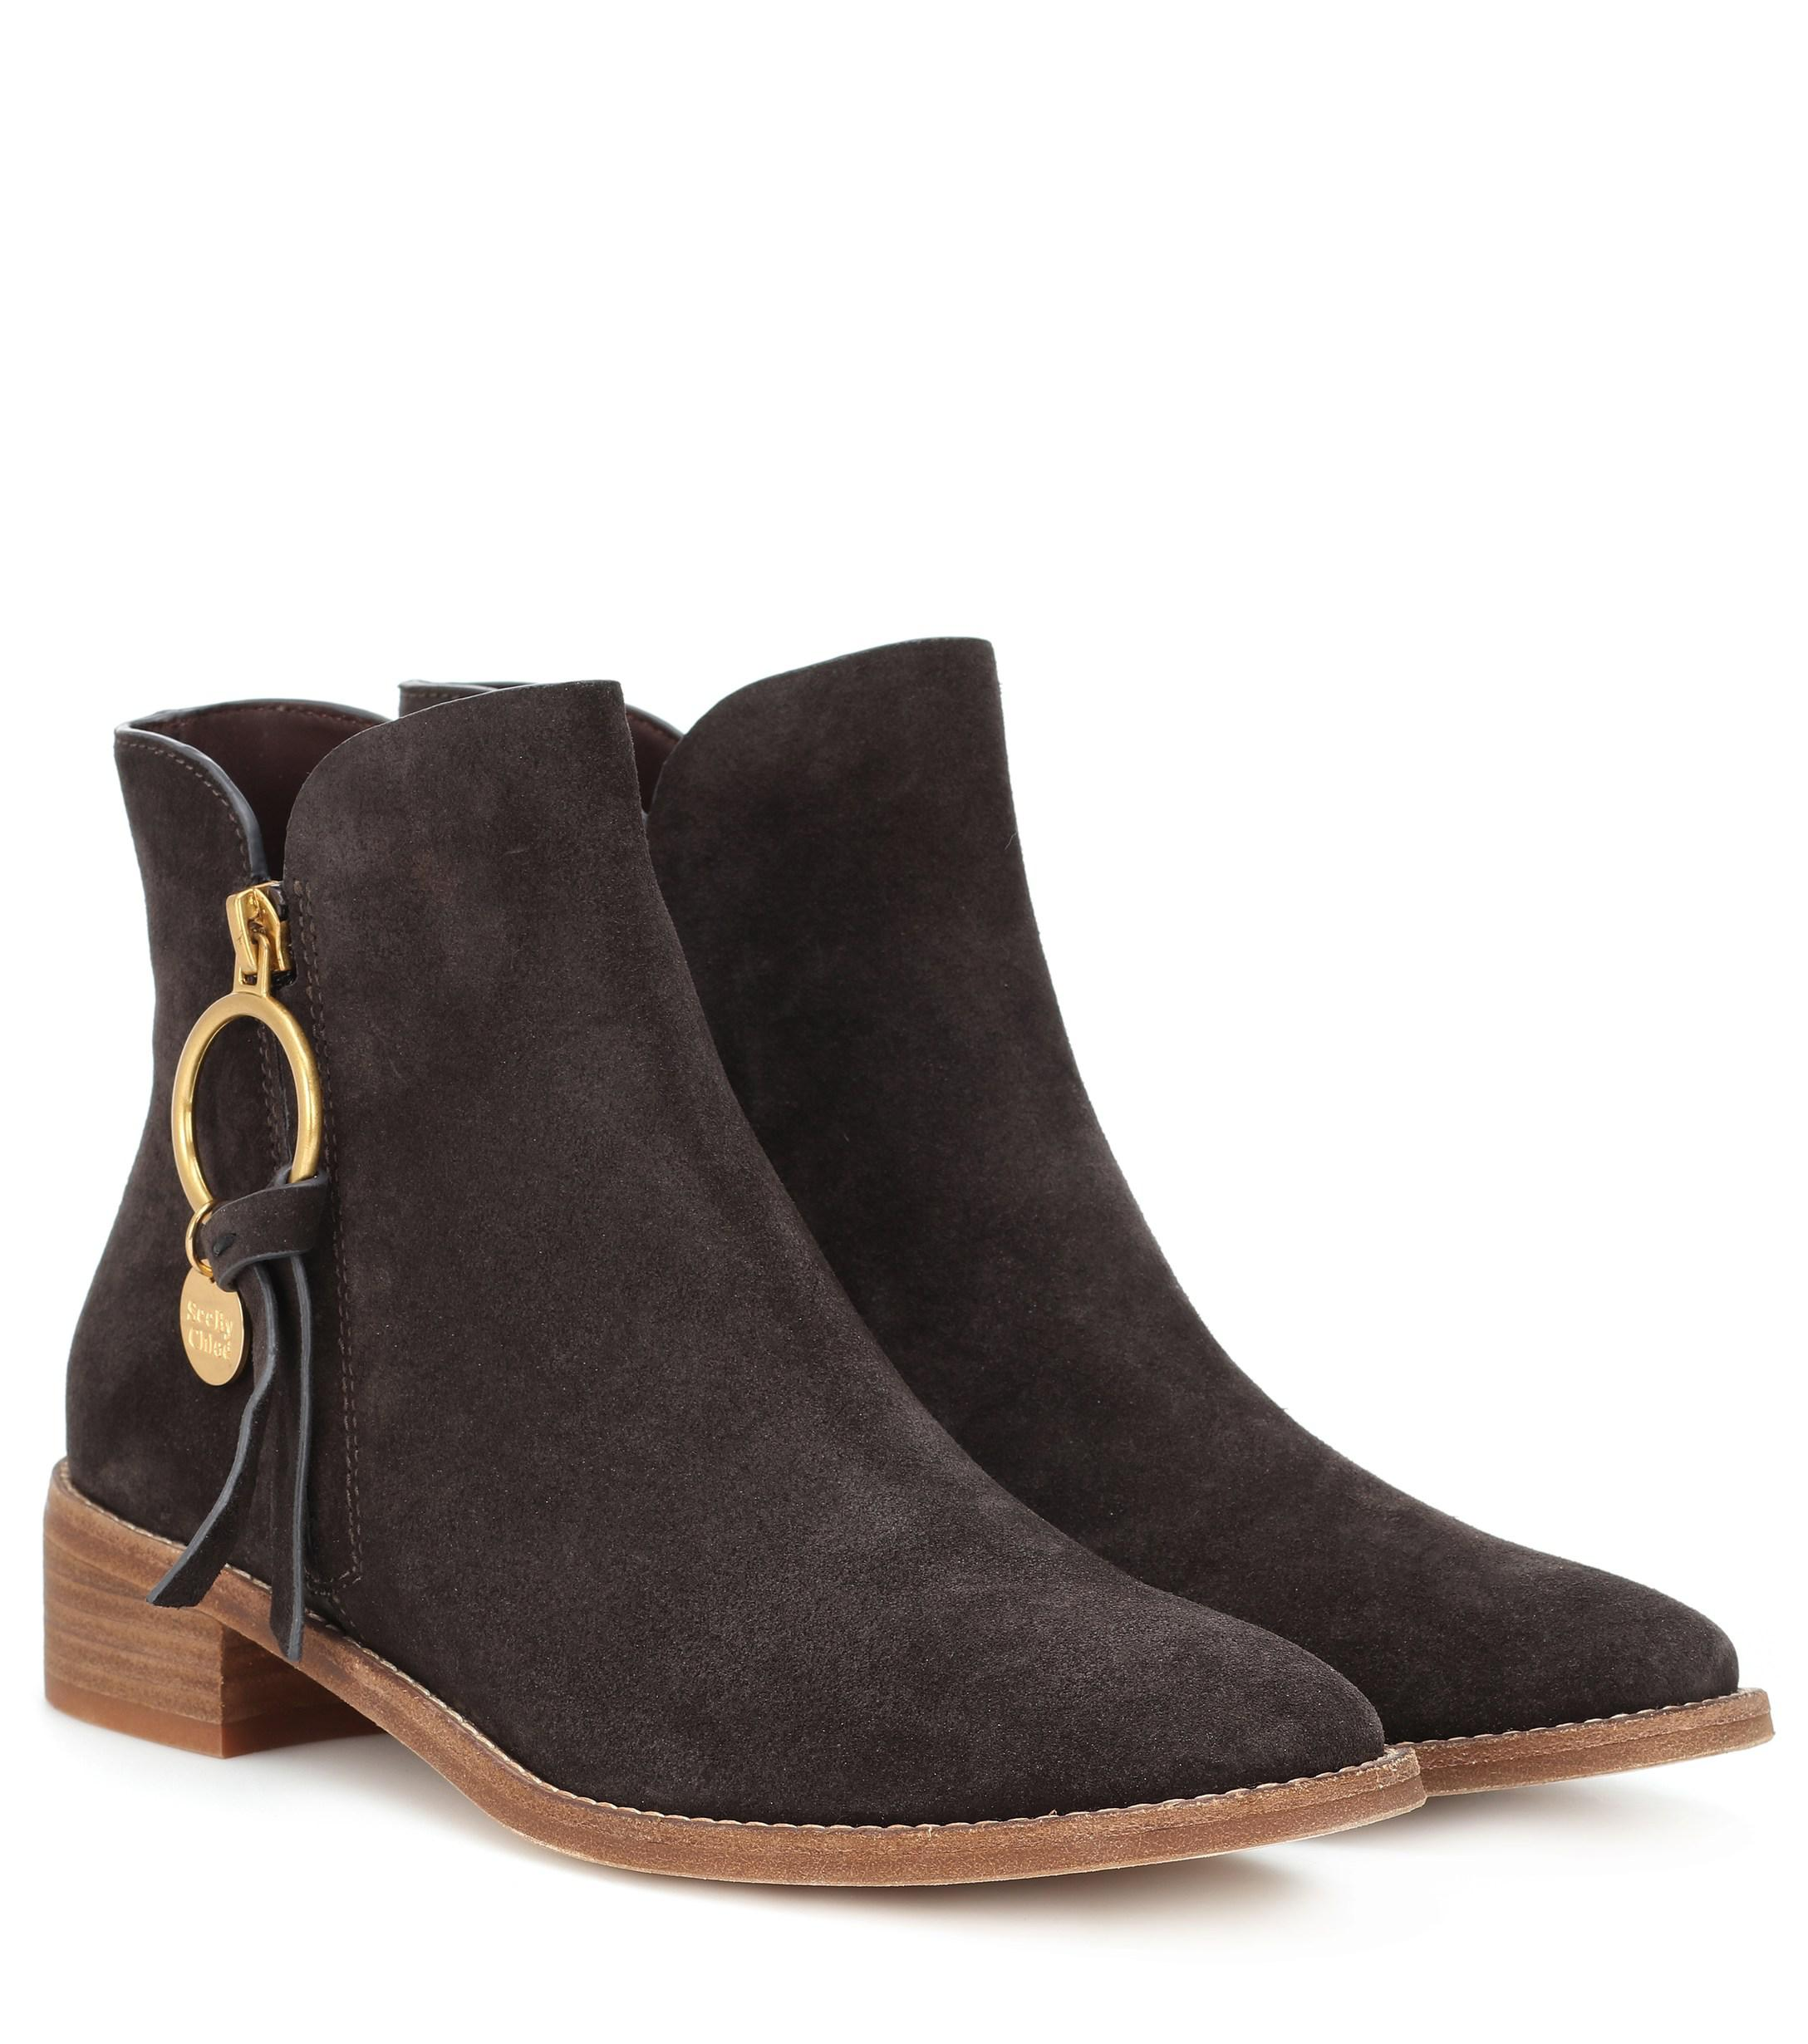 fb8cc2cc06883 Lyst - See By Chloé Louise Flat Suede Ankle Boots in Gray